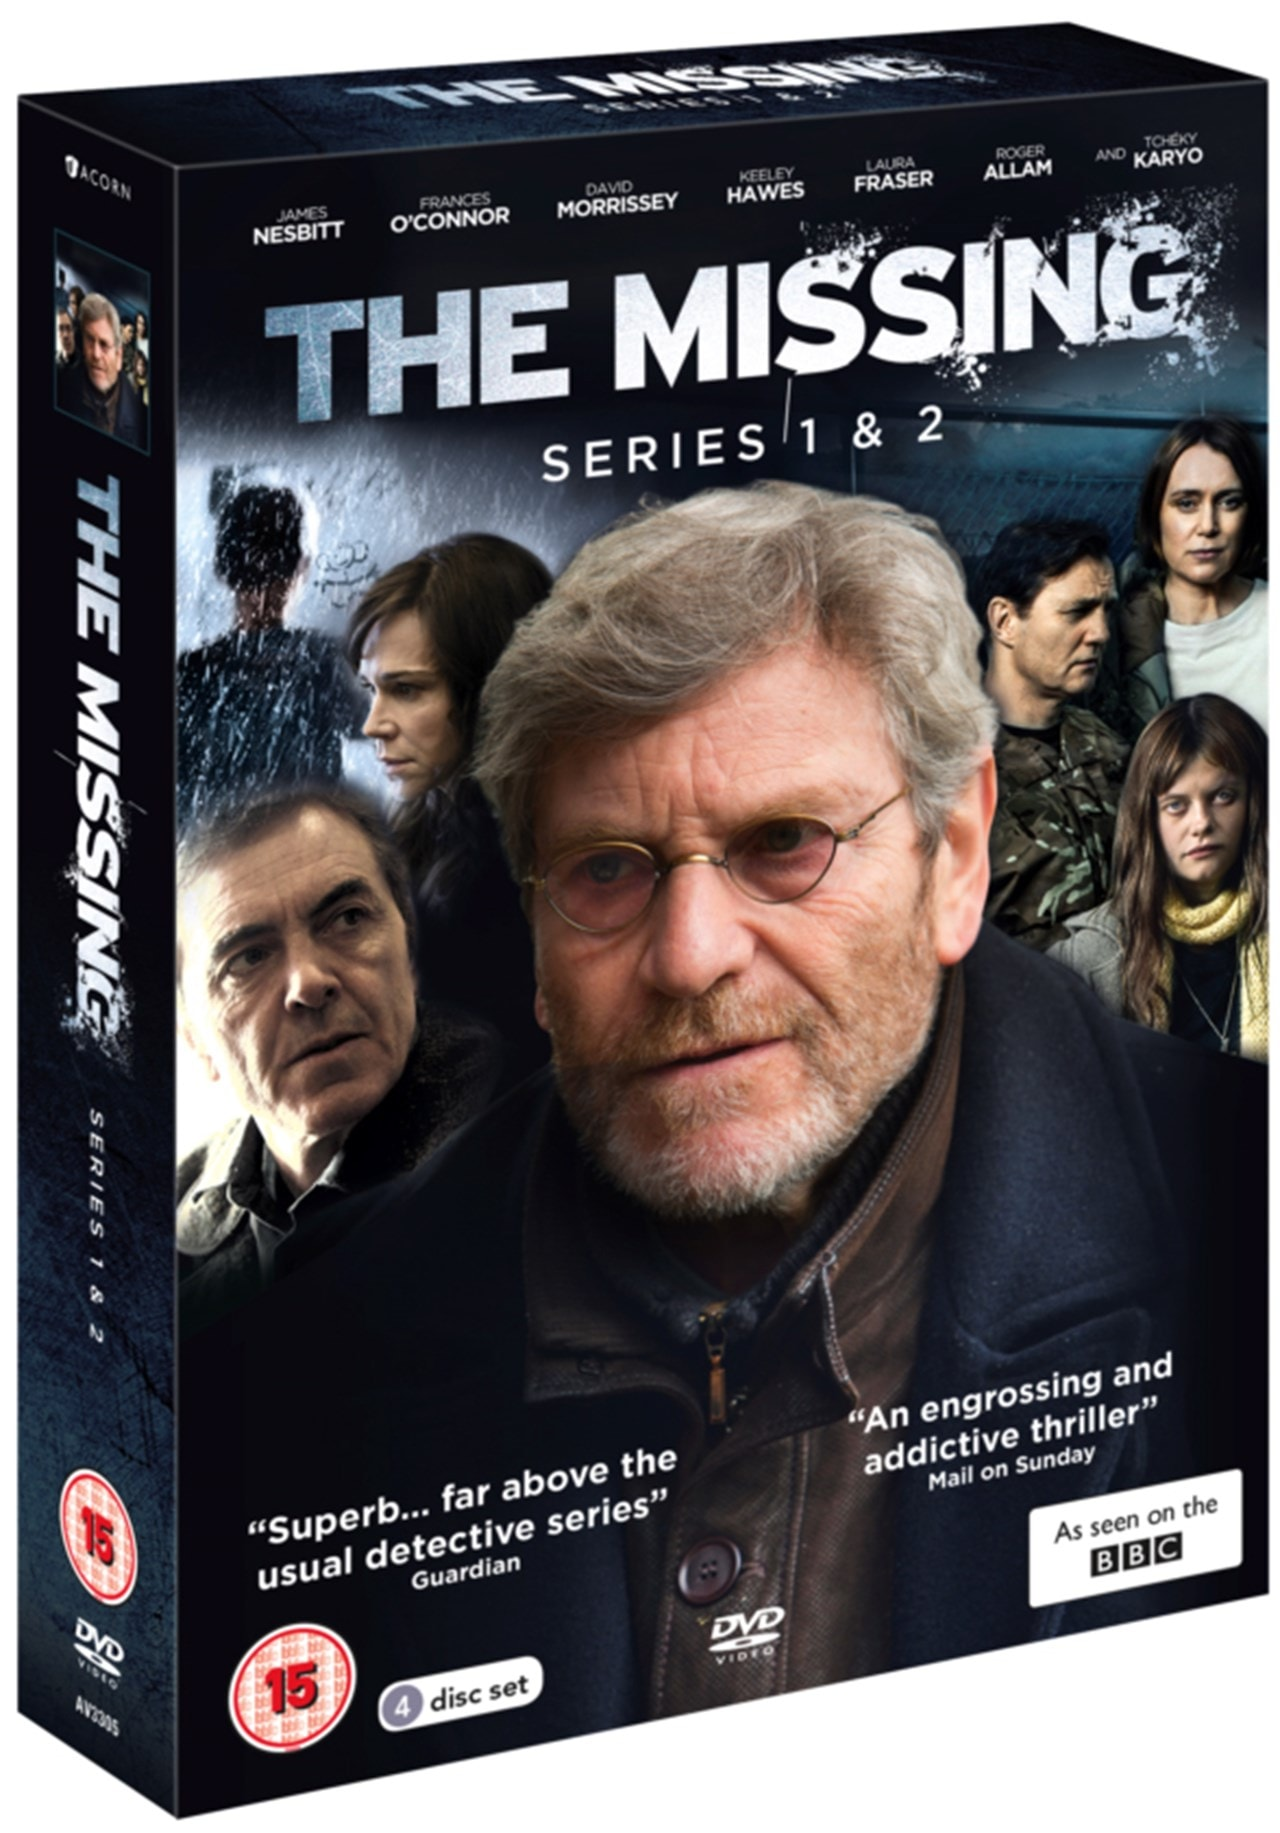 The Missing: Series 1 & 2 - 2